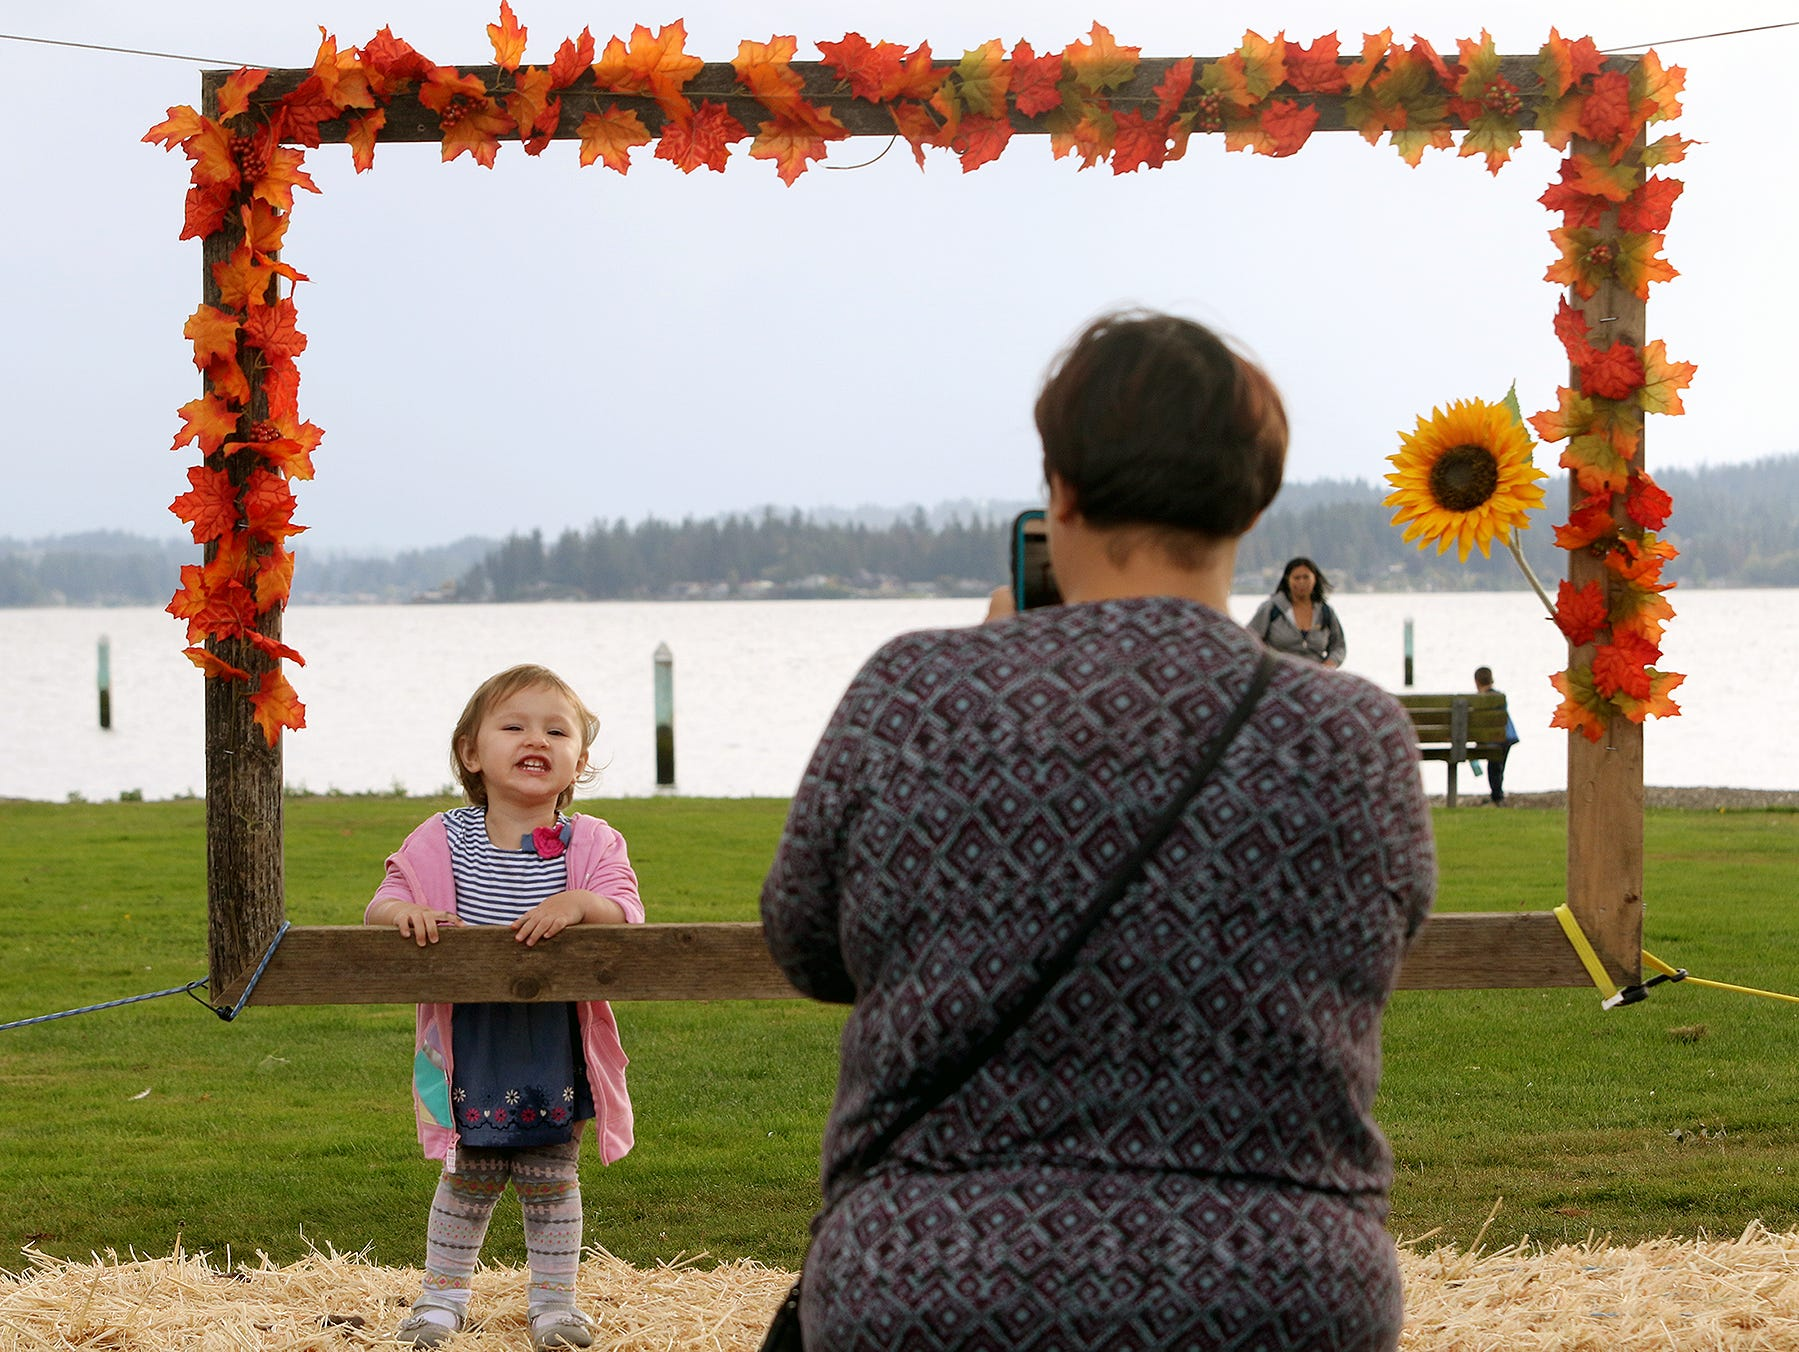 Patterson Goodwin, 2, says cheese as he mom Maria takes her picture in a fall photo frame after she painted a pumpkin at the Central Kitsap Farmers Market in Old Town Silverdale on Tuesday, October, 2, 2018.The pumpkins were supplied by Pheasant Fields Farm in Silverdale.